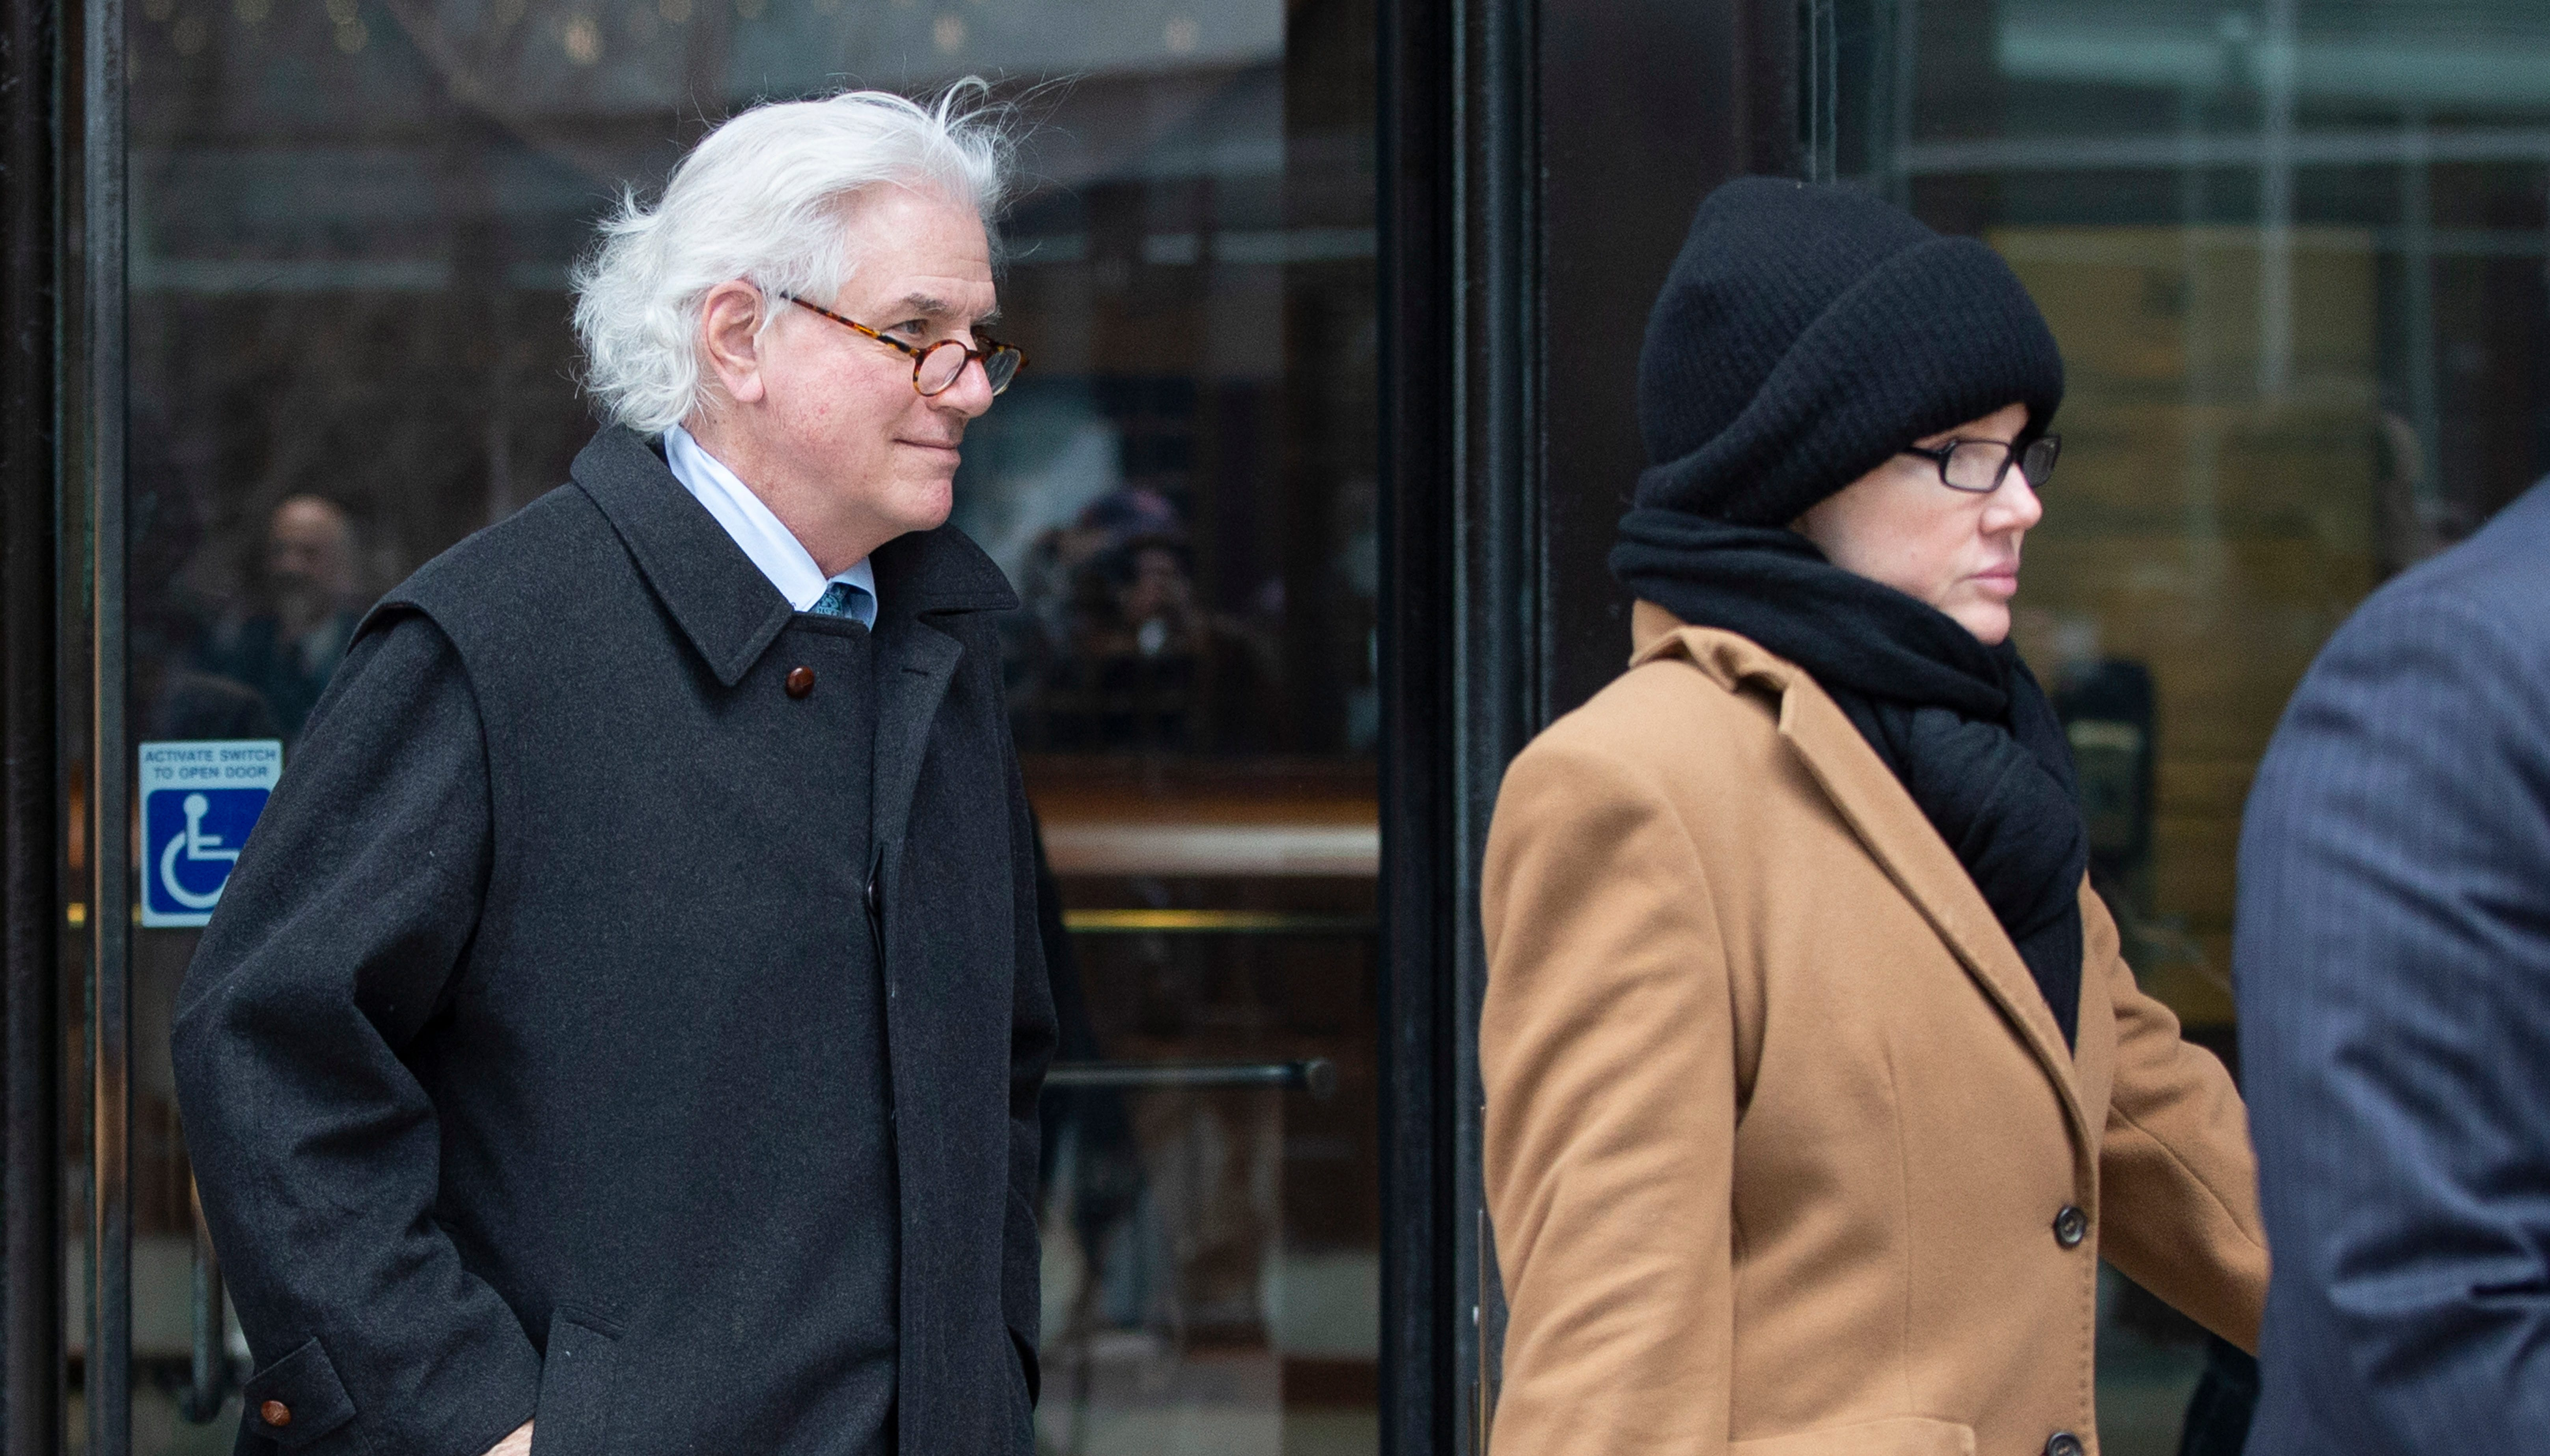 epa07471635 Gregory Abbott (L) of New York, and his wife, Marcia Abbott (R) leave the John J Moakley Federal Court House after entering a plea for their part in the college admissions scandal in Boston, Massachusetts, USA, 29 March 2019. EPA-EFE/CJ GUNTHER ORG XMIT: CJX14